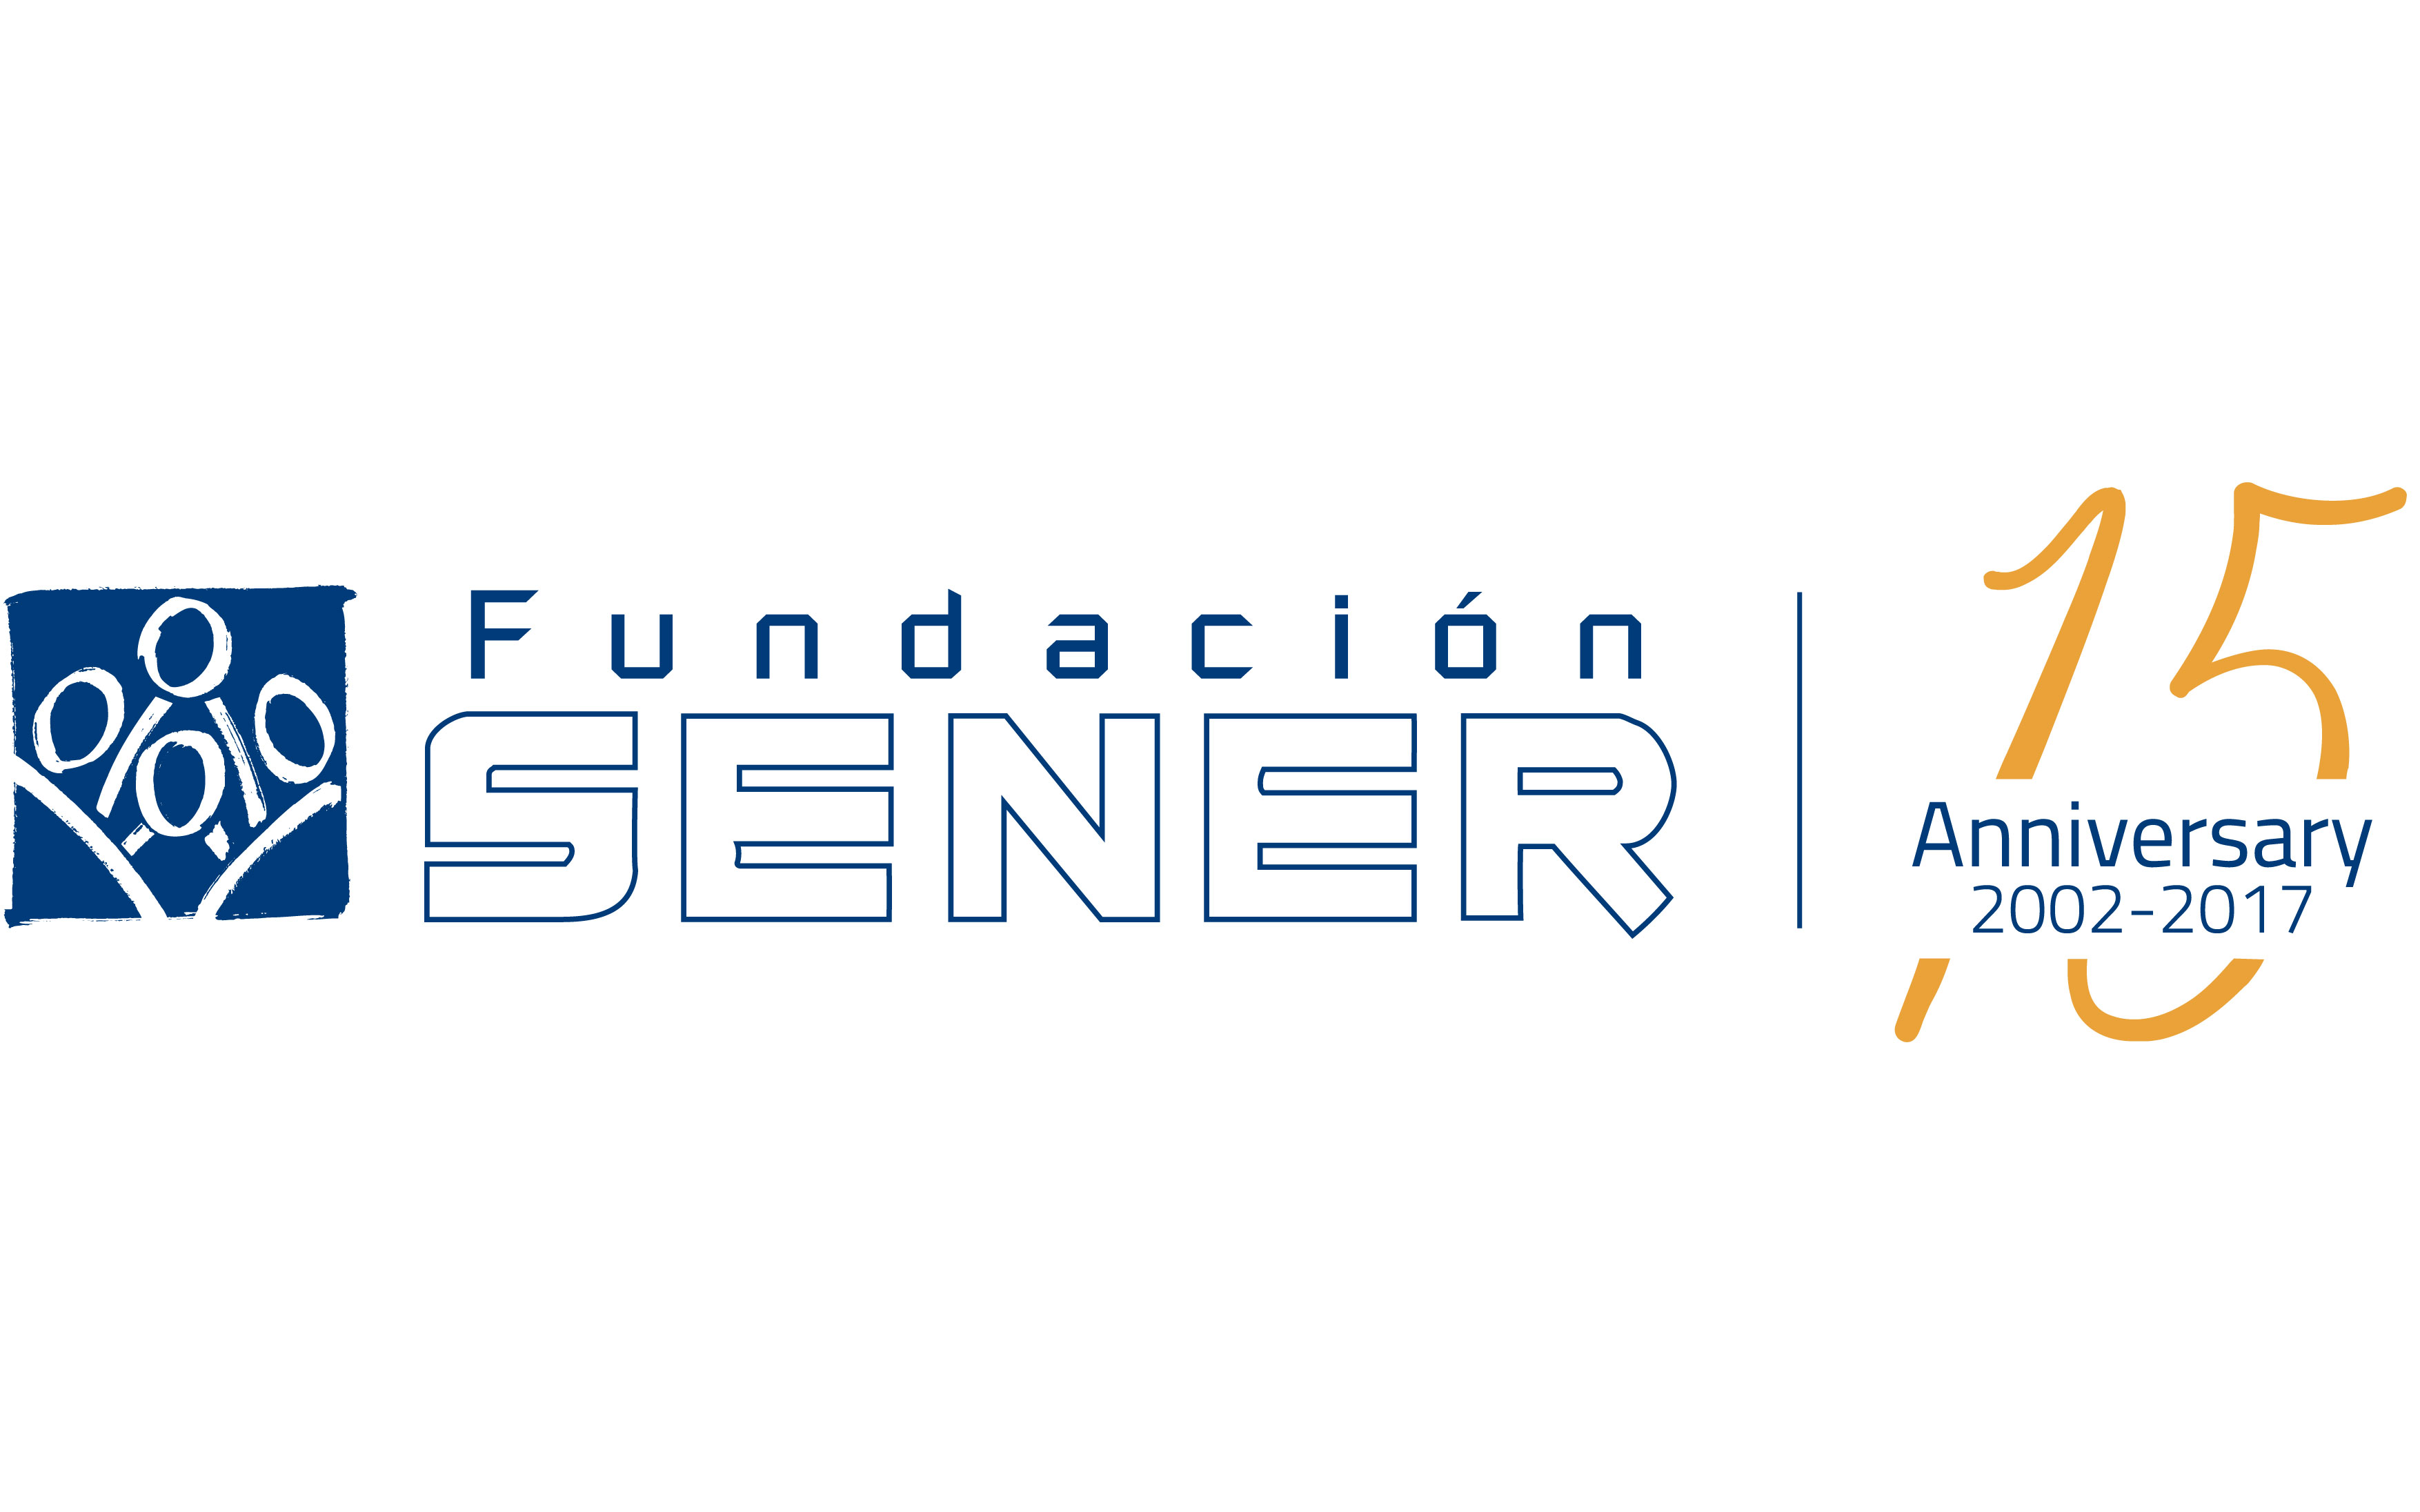 http://www.engineeringandconstruction.sener/ecm-images/fundacion-sener-15-aniversario-1_replica_replica